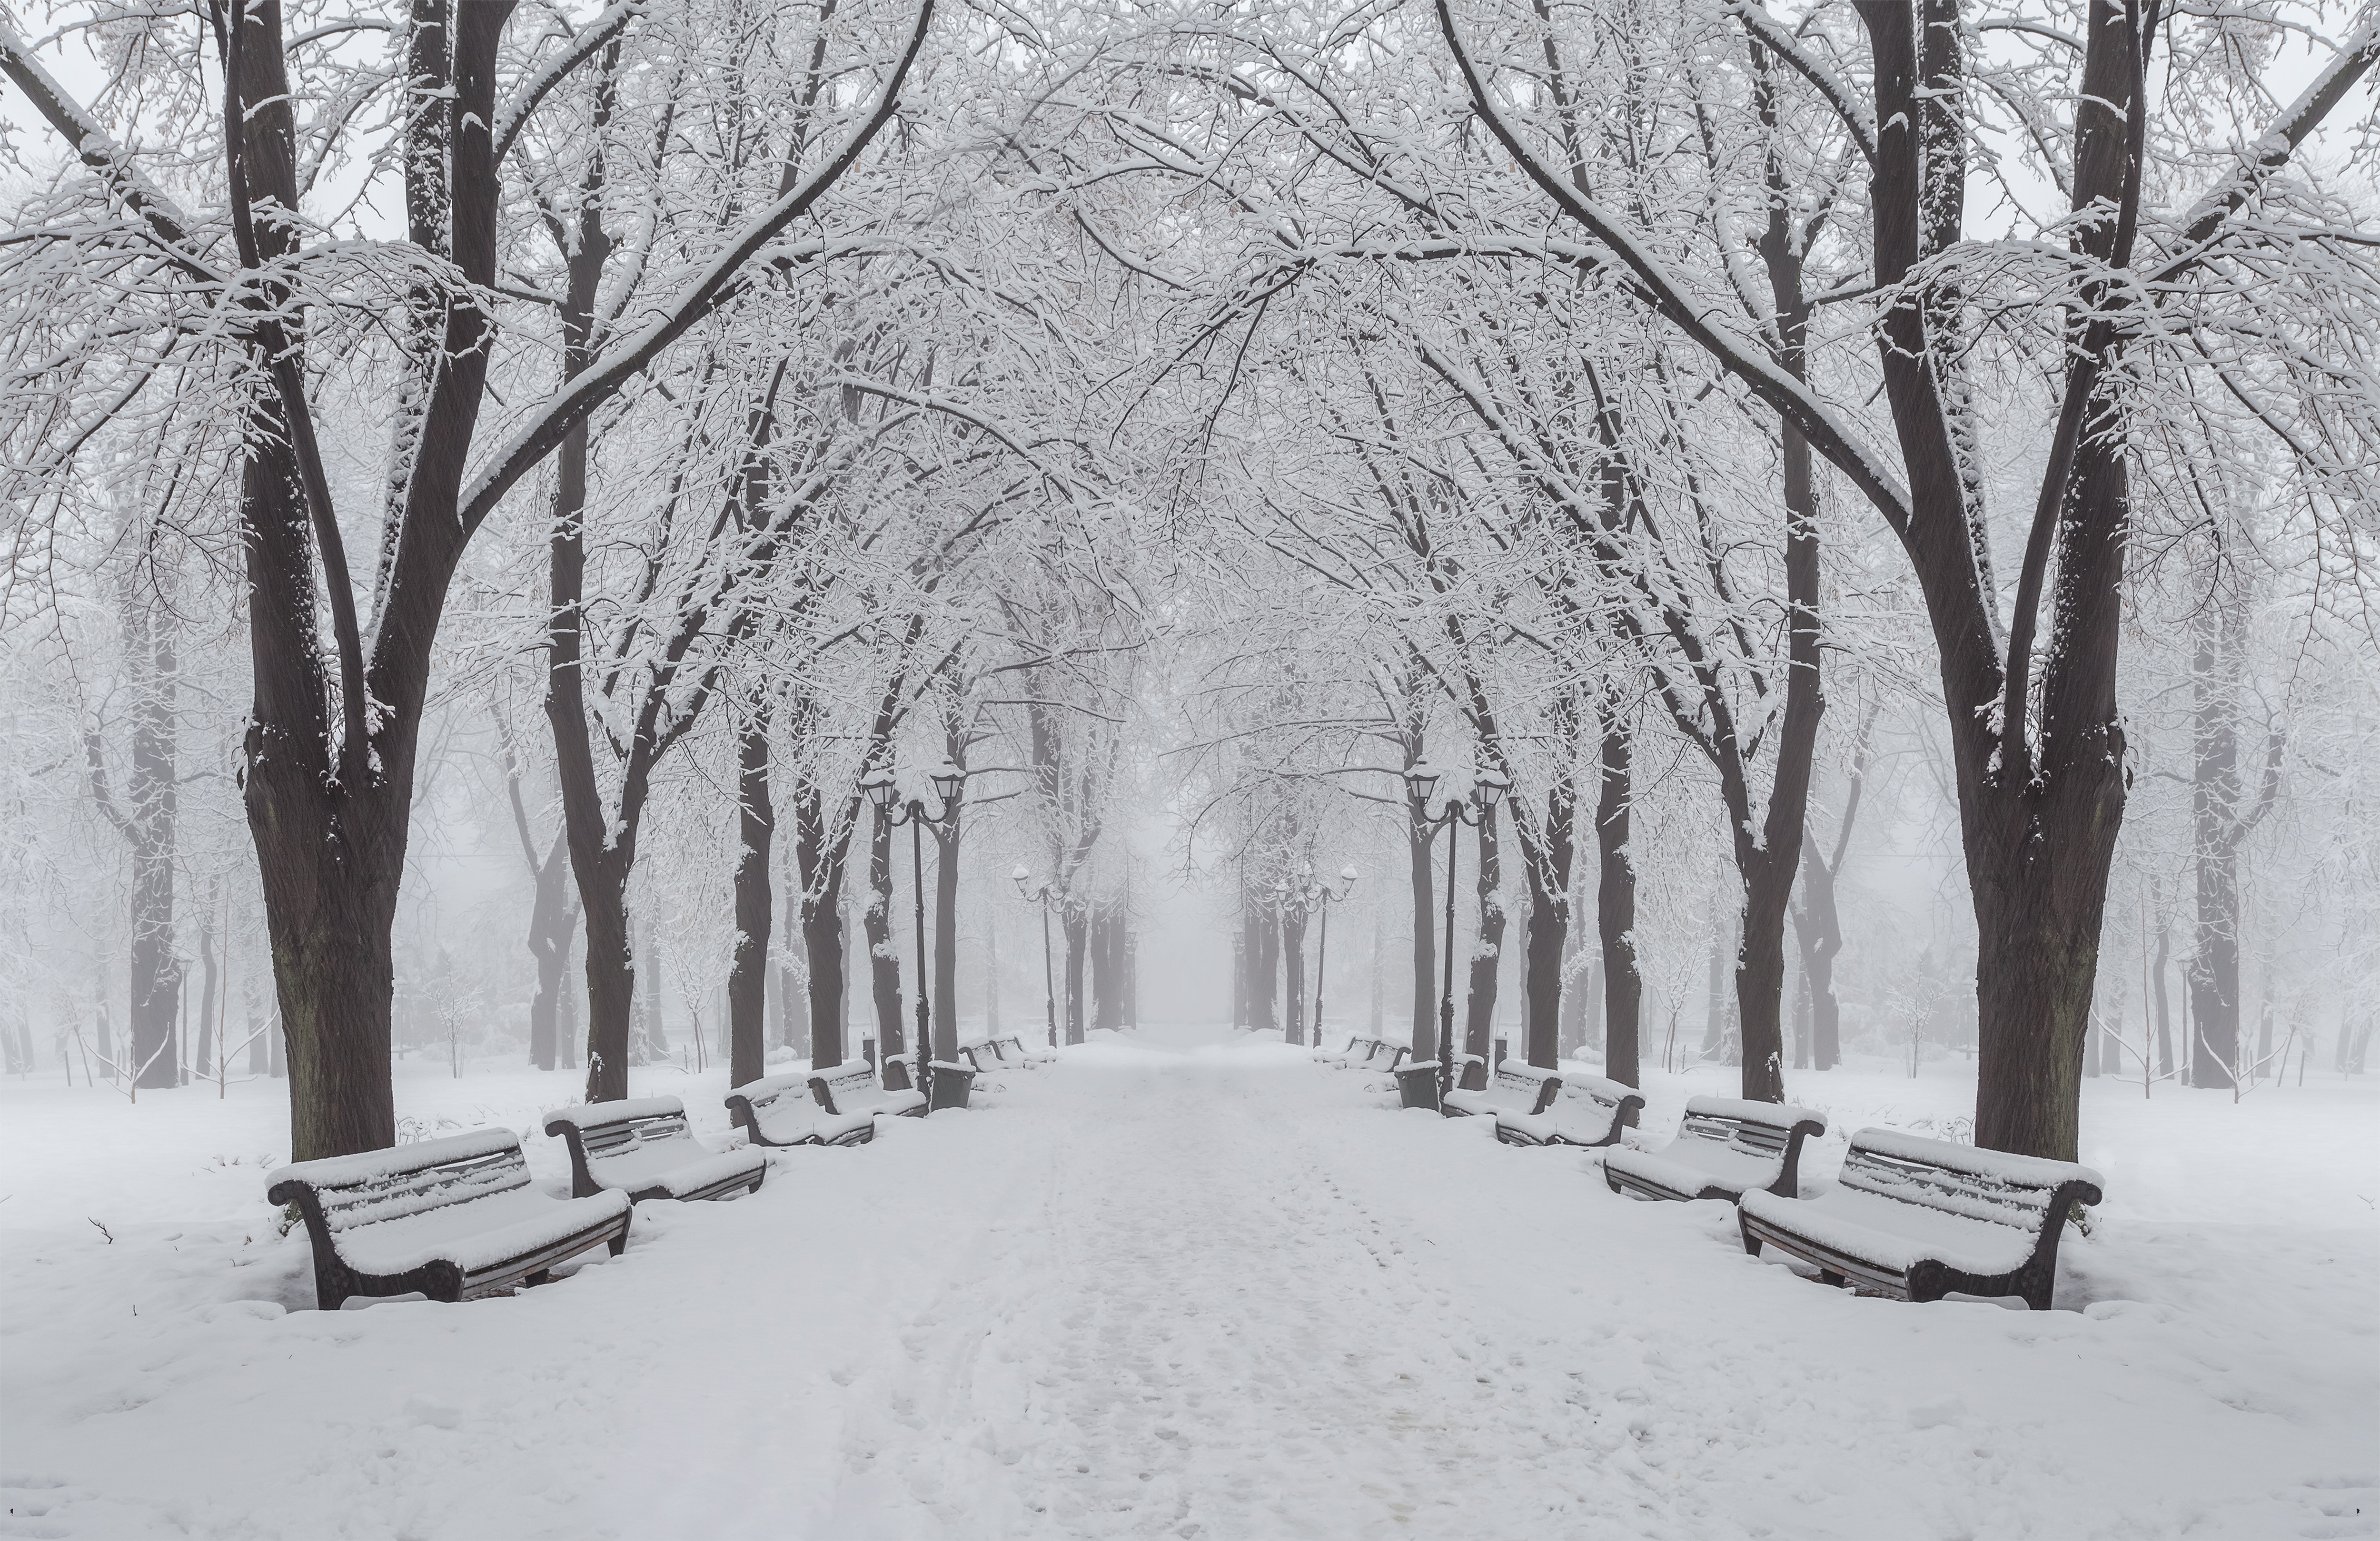 Christmas Wallpaper Snow Falling Winter Park Background Gallery Yopriceville High